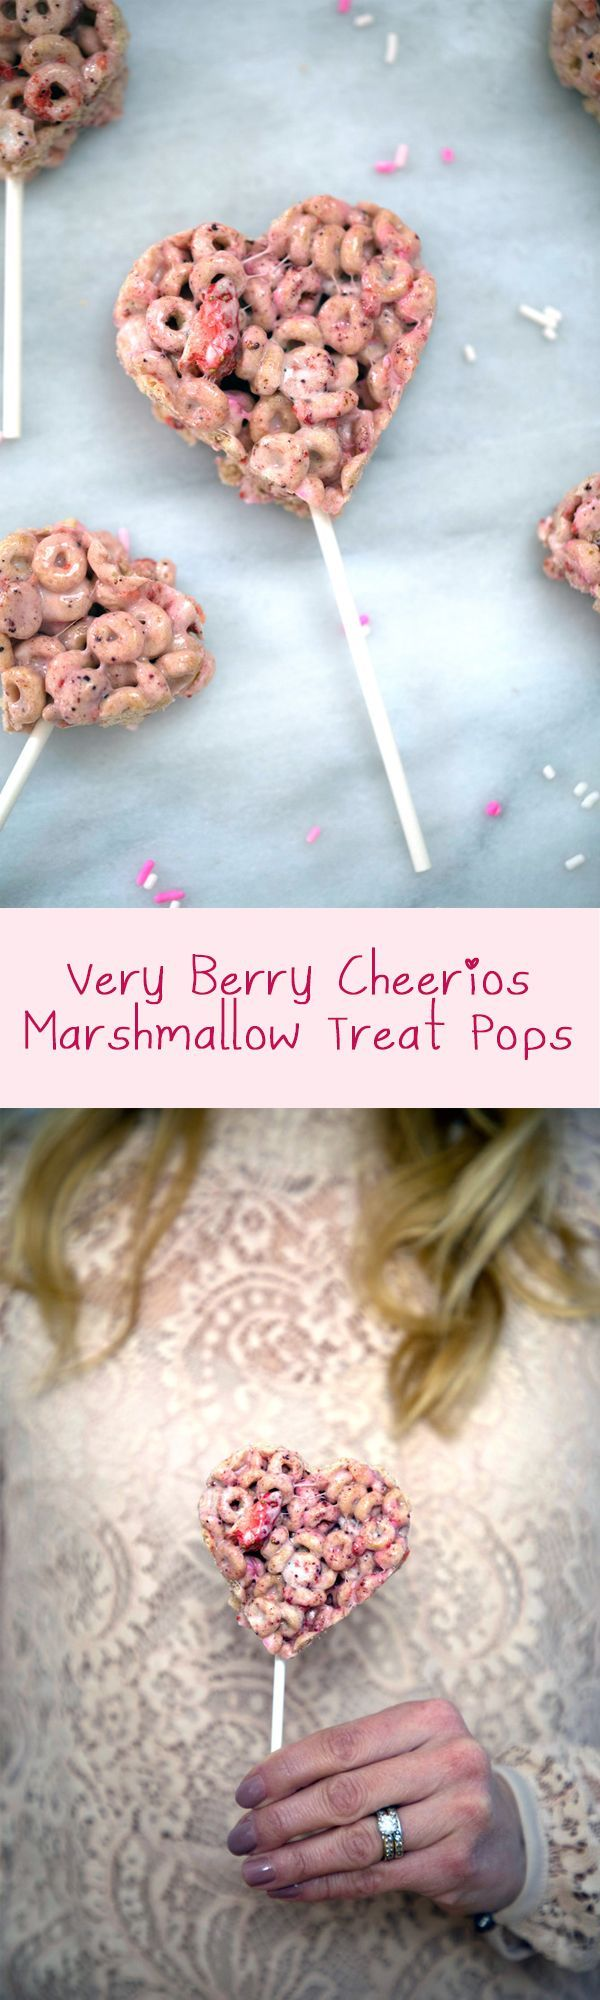 Very Berry Cheerios Marshmallow Treat Pops -- Rice Krispies Treats Style Pops made with Very Berry Cheerios and freeze-dried strawberries | wearenotmartha.com #valentinesday #ricekrispiestreats #hearts #berries #cheerios #marshmallows